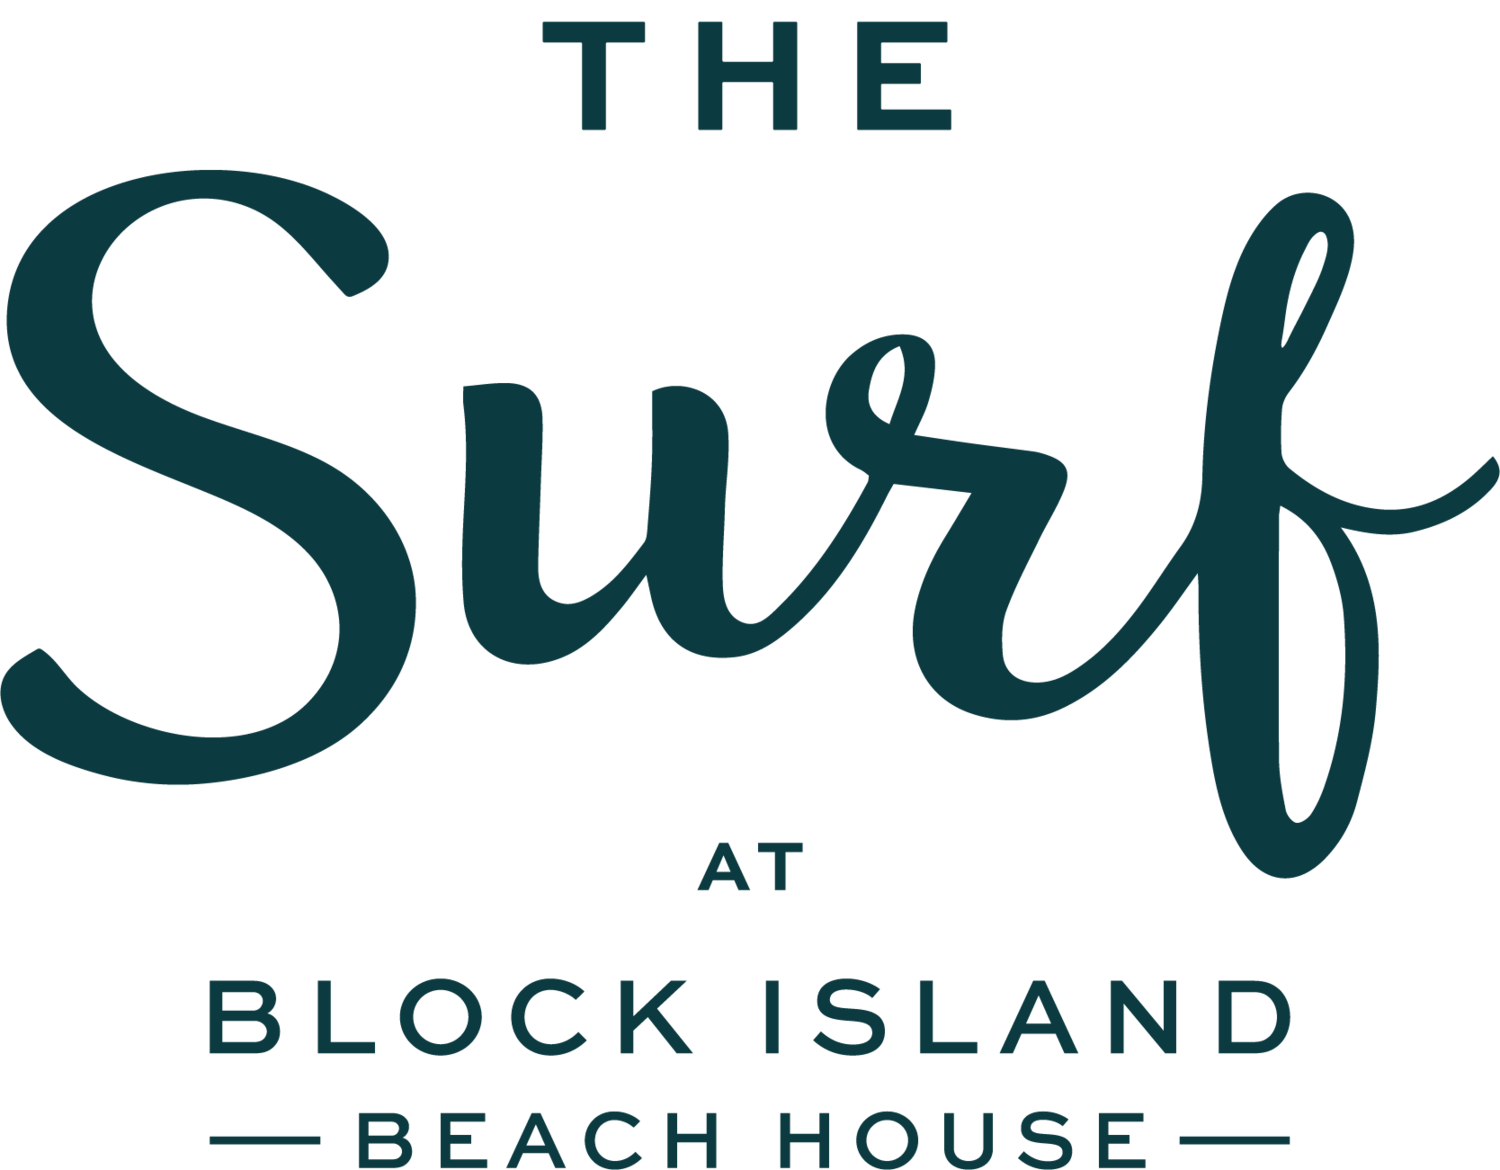 The Surf at Block Island Beach House